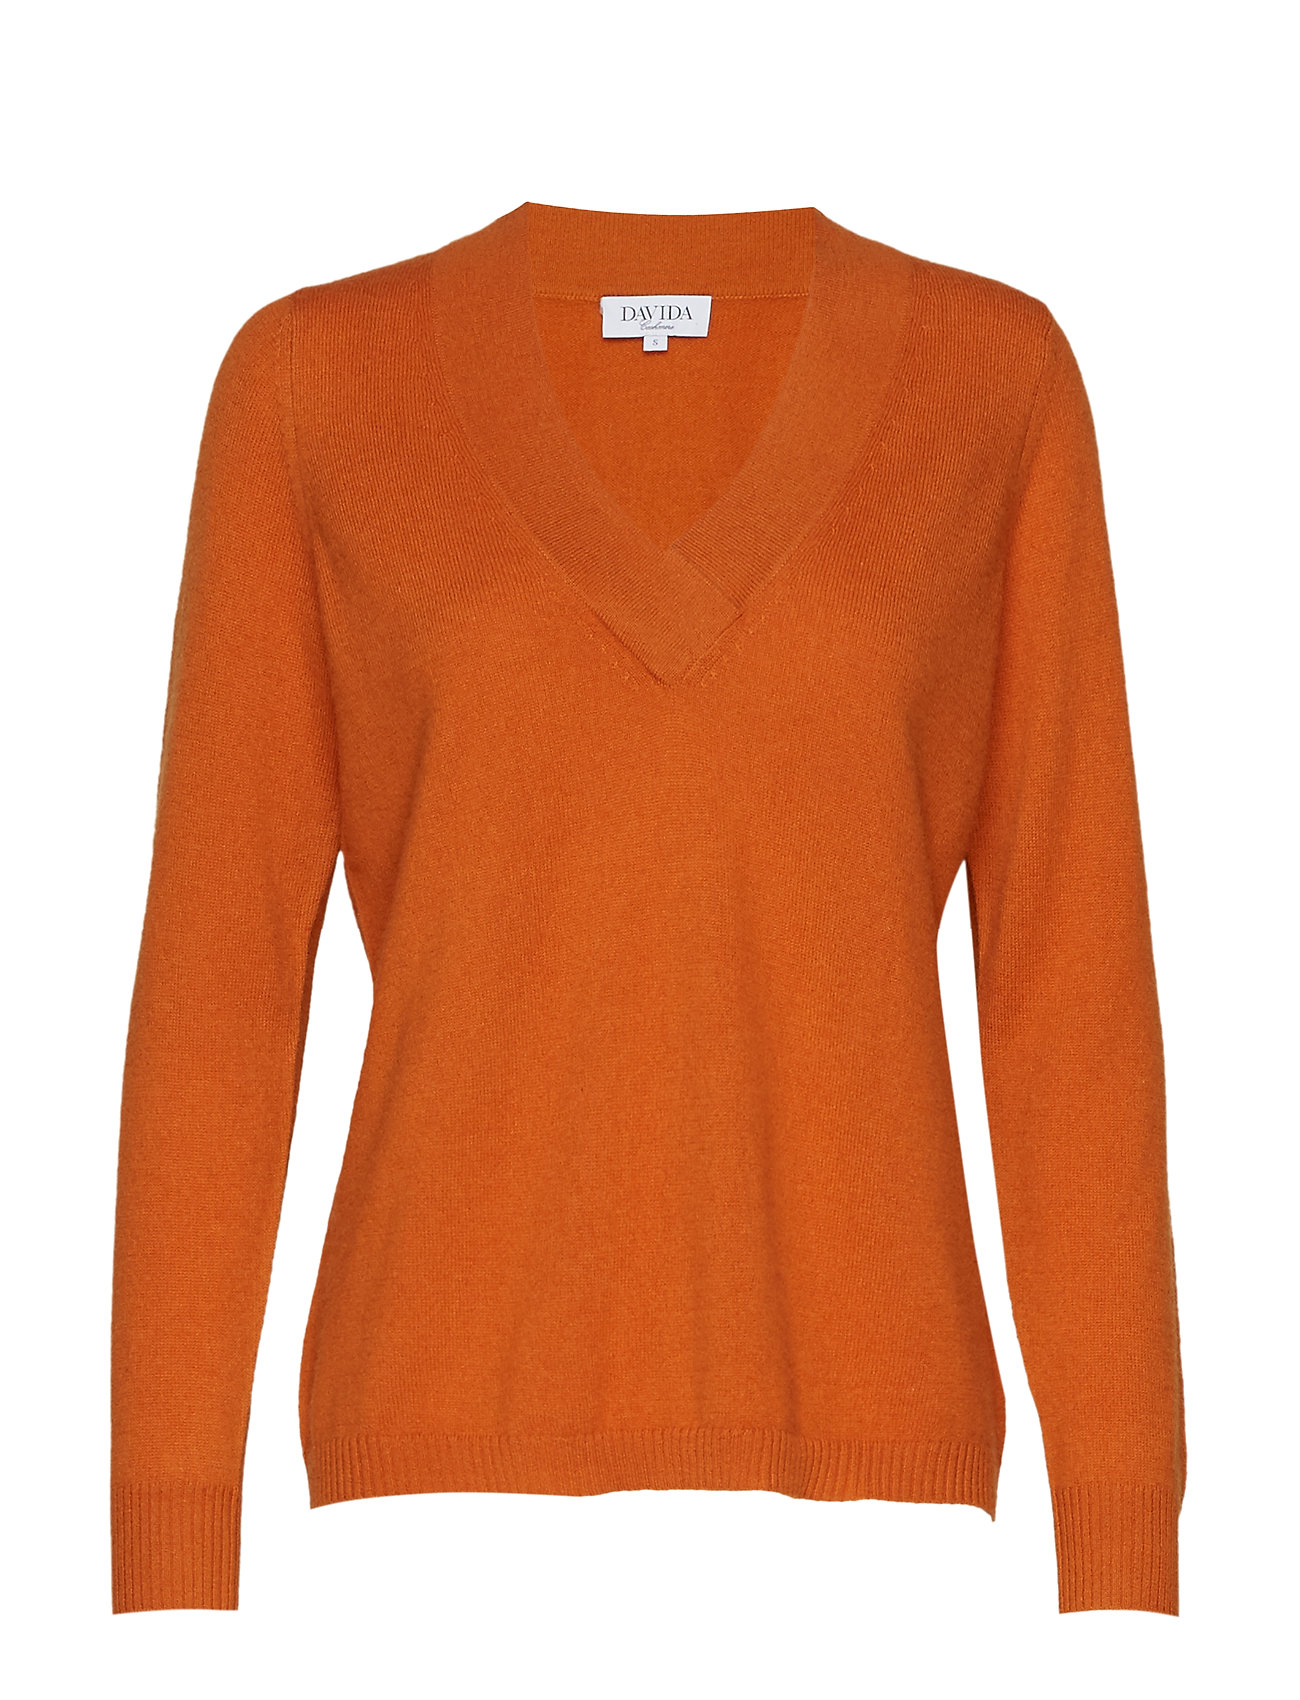 Davida Cashmere V-neck oversized sweater - RUST